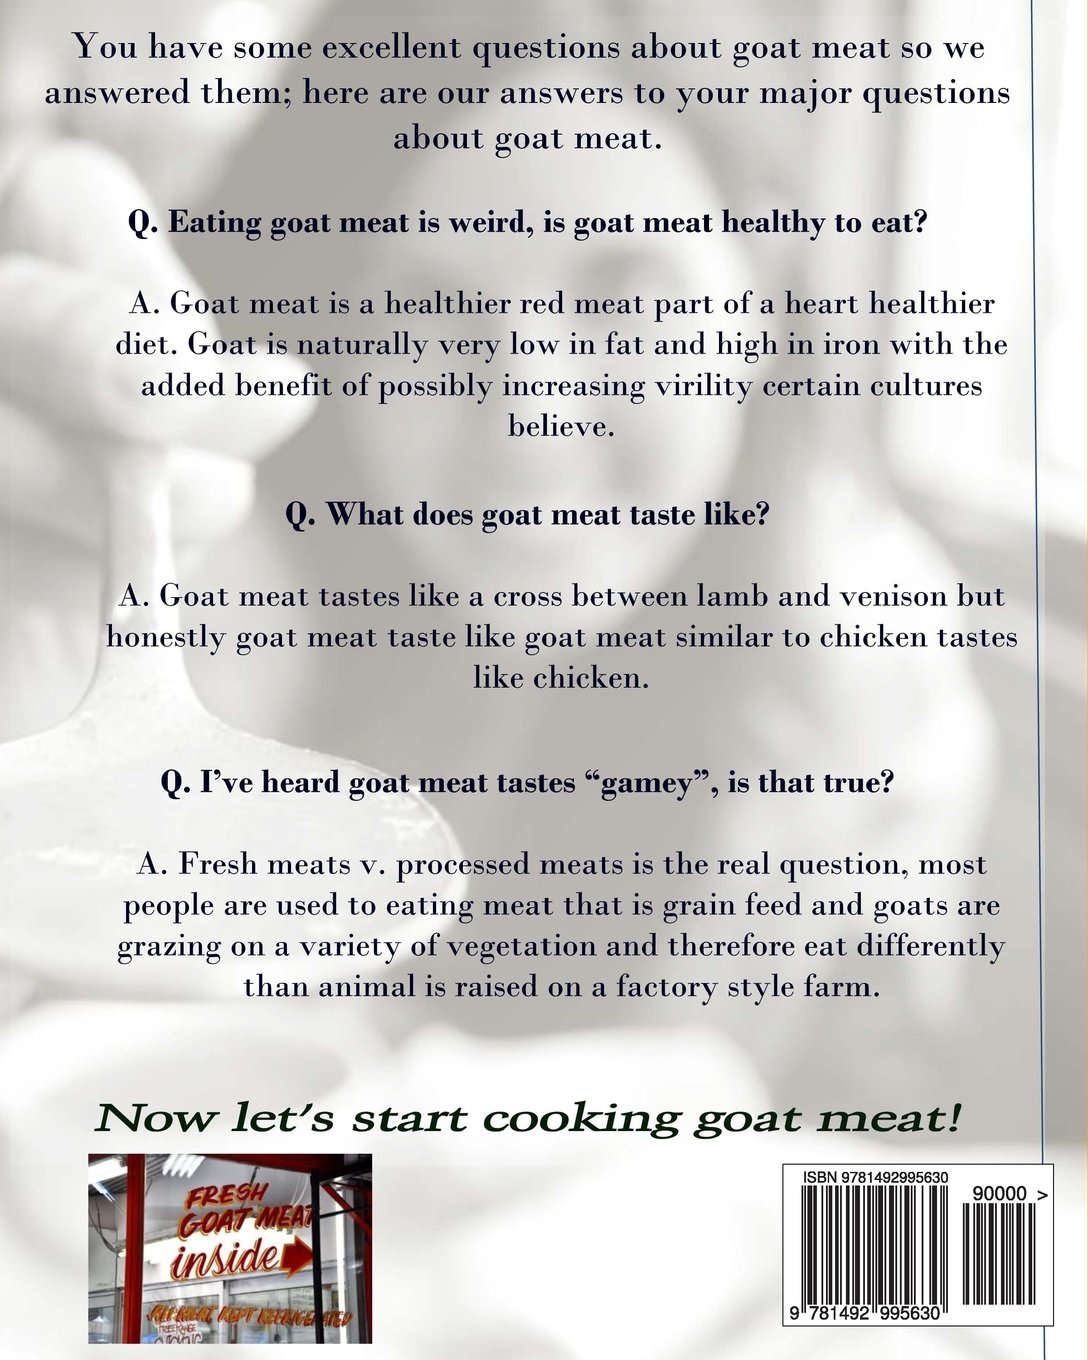 Getting Your Goat: The Ultimate Guide to Cooking Goat Meat